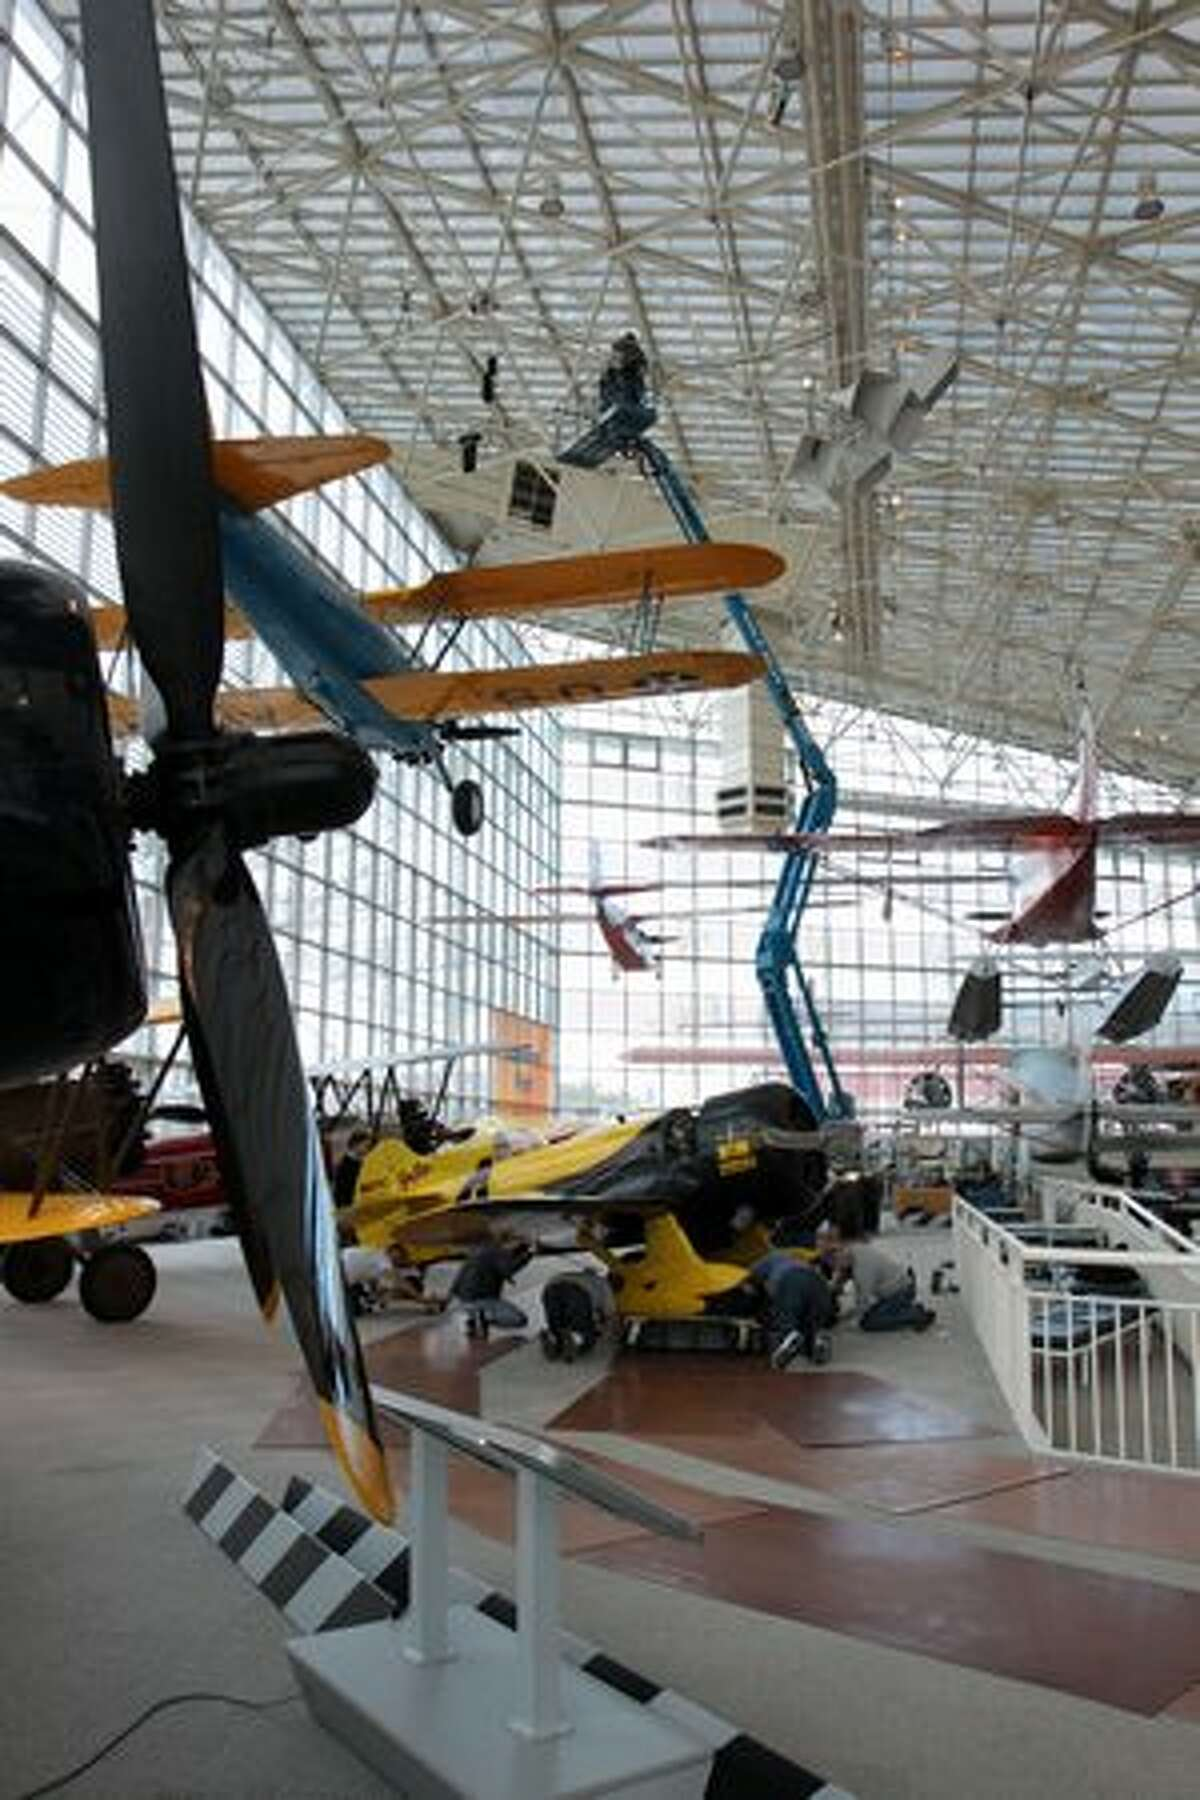 The Museum of Flight prepares to raise its Granville Brothers Gee Bee Z reproduction in its main hall, in Seattle, Wash.